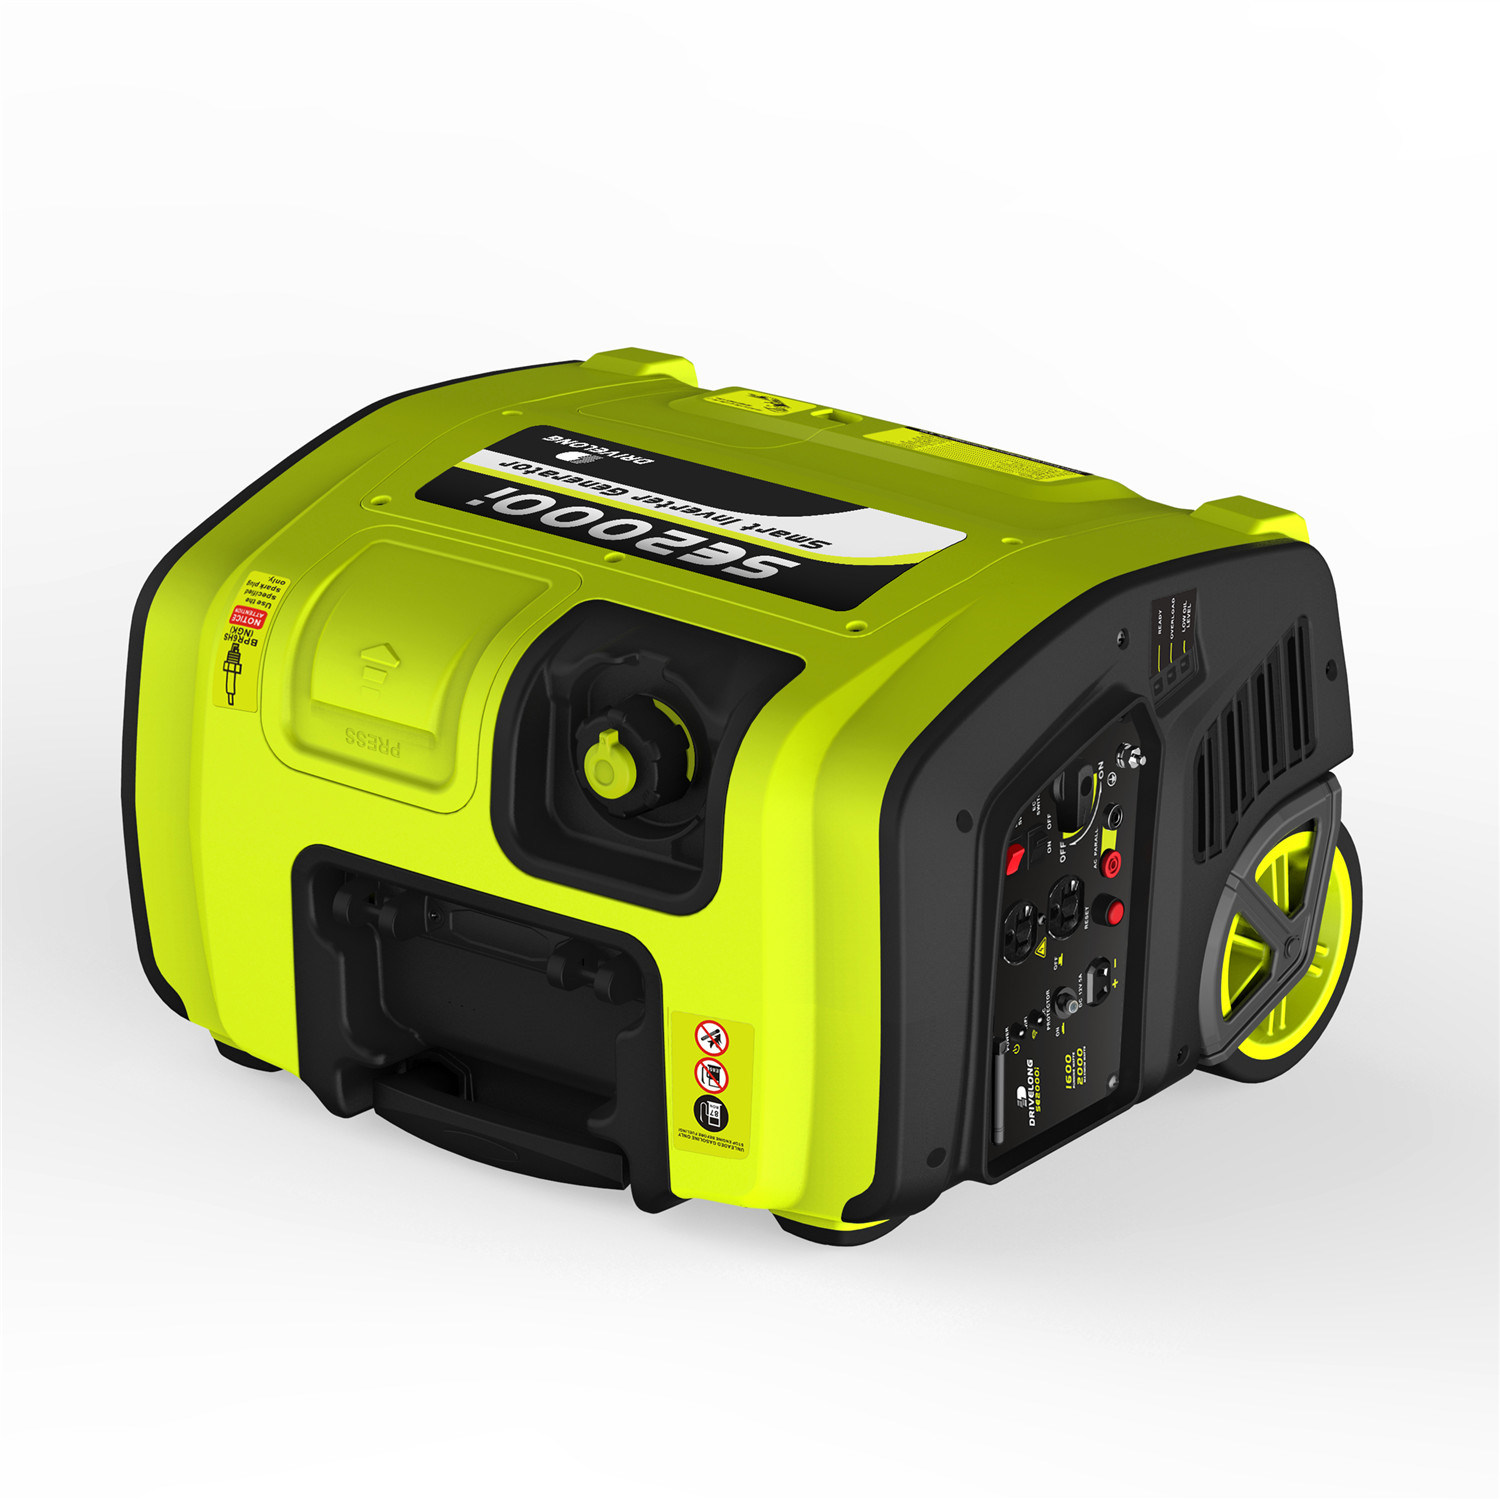 2kw Gasoline Portable Inverter Generator with GS/Ce/ETL/EPA/Carb/E13